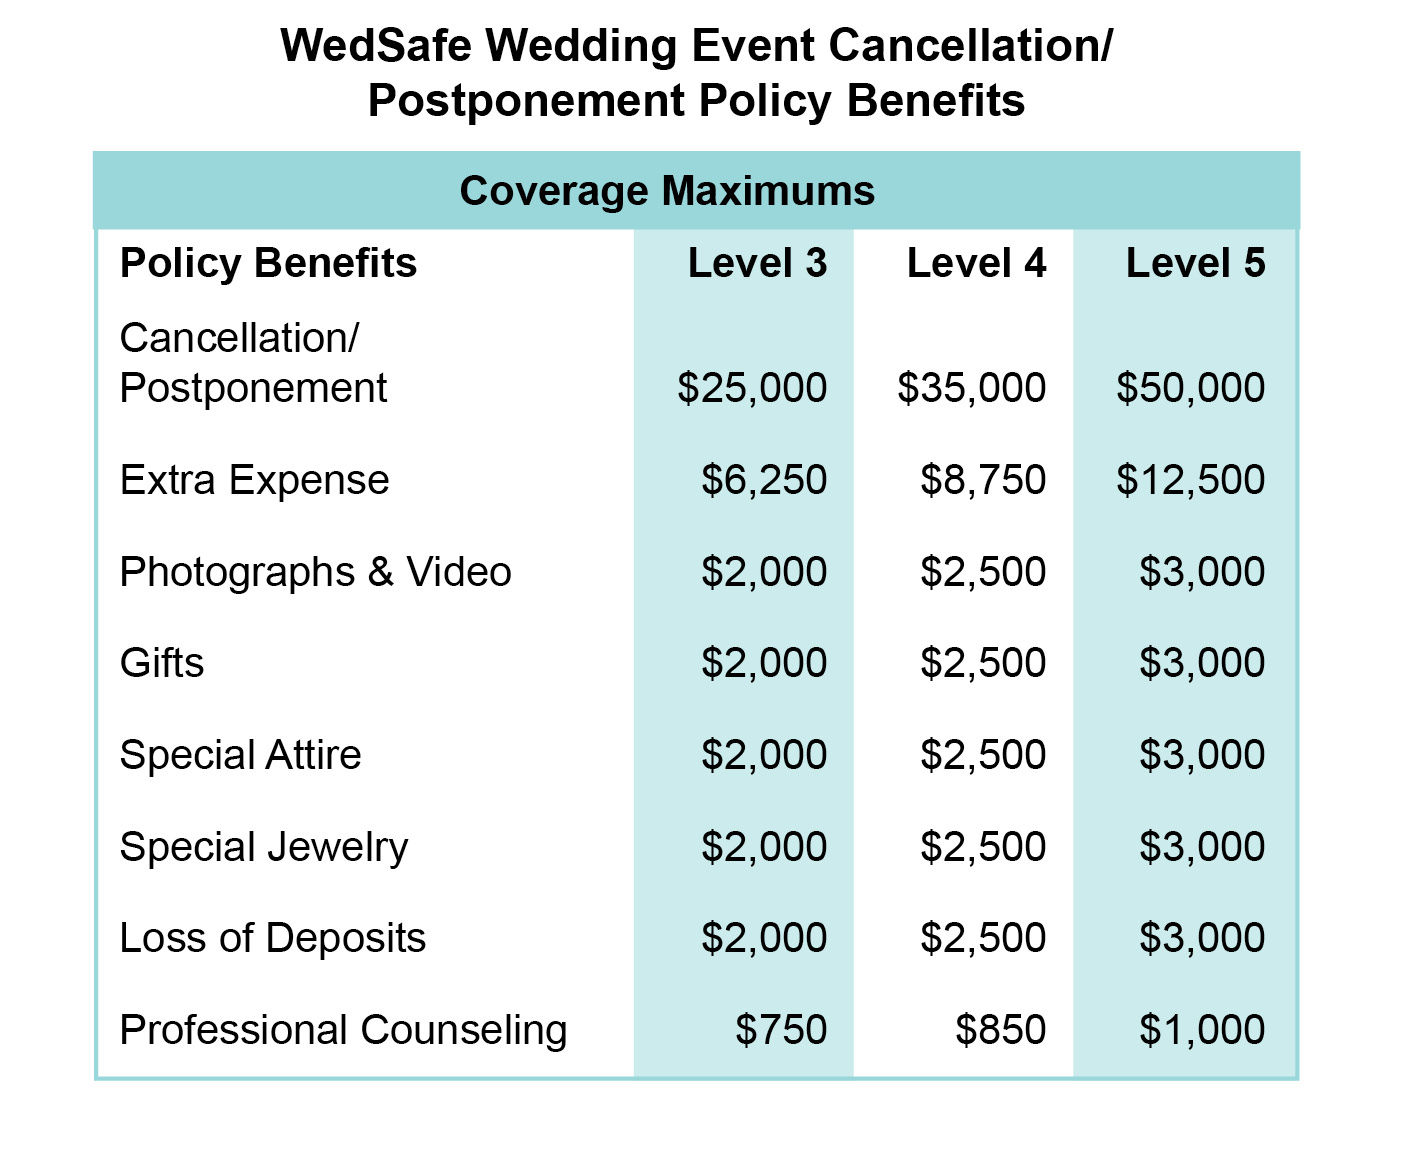 Wedding Liability Insurance: WedSafe Wedding Event Cancellation/Postponement Policy